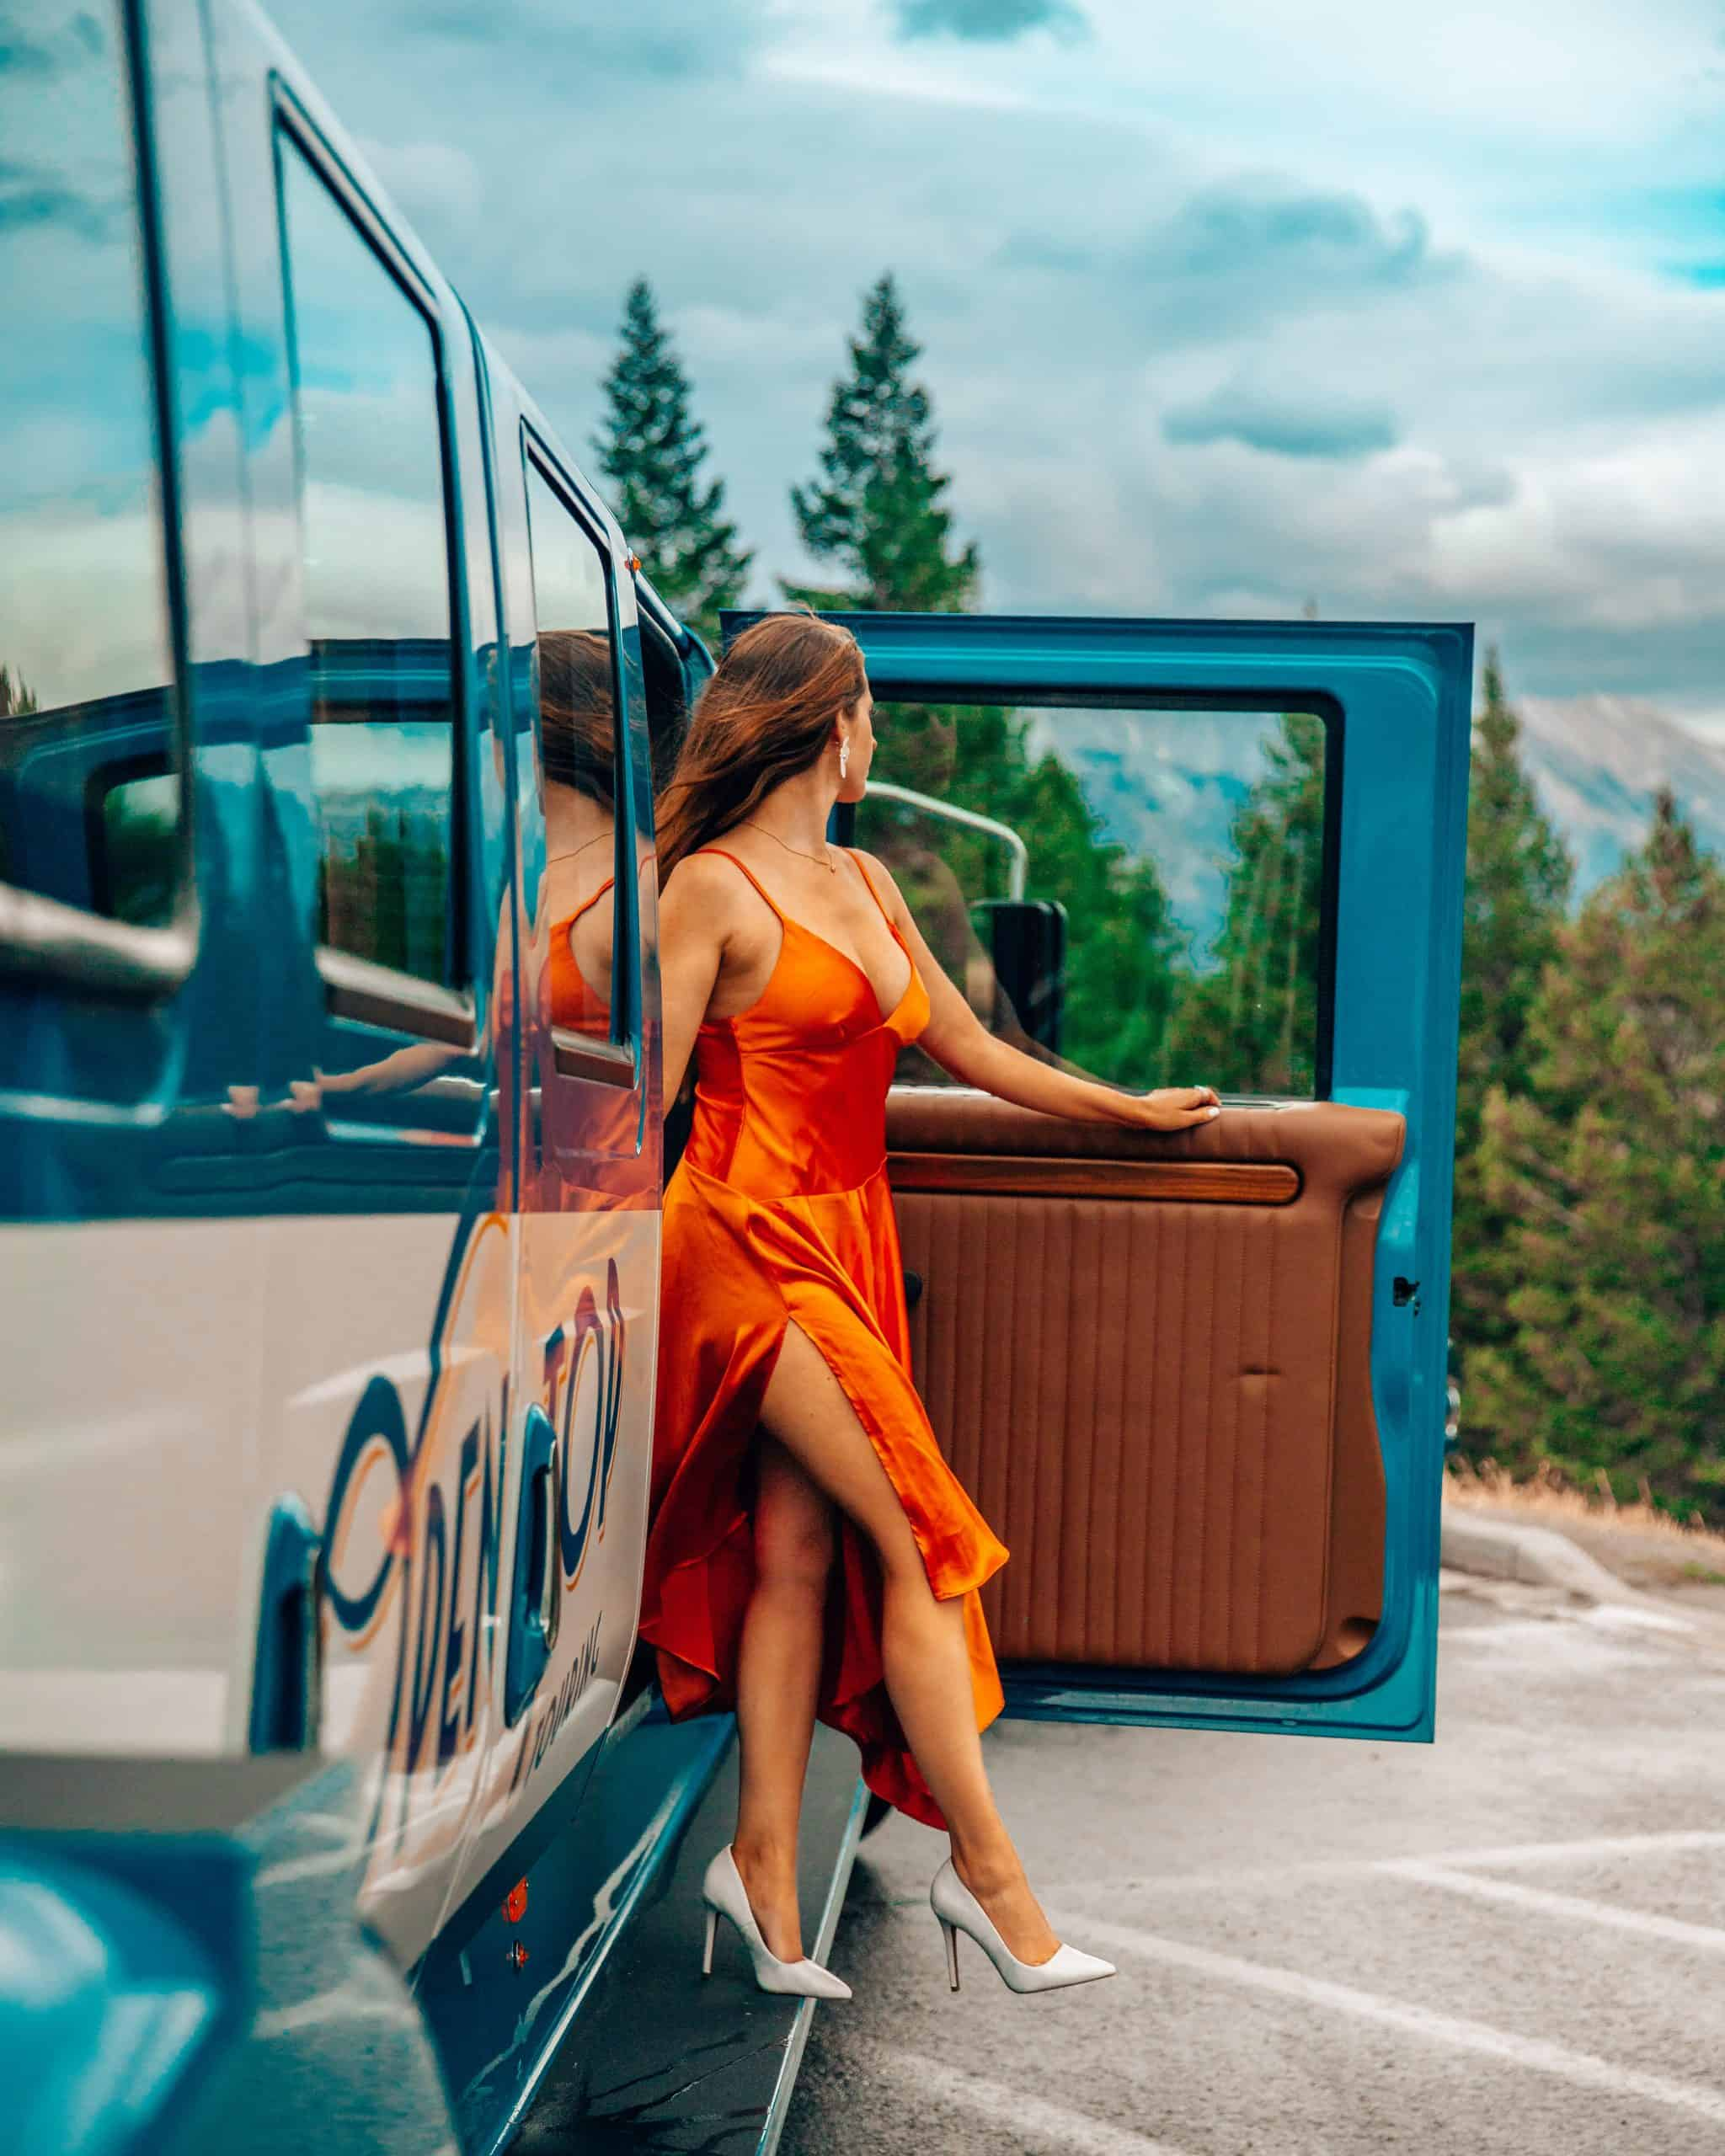 Bettina with Open Top Touring Vintage Bus in Banff